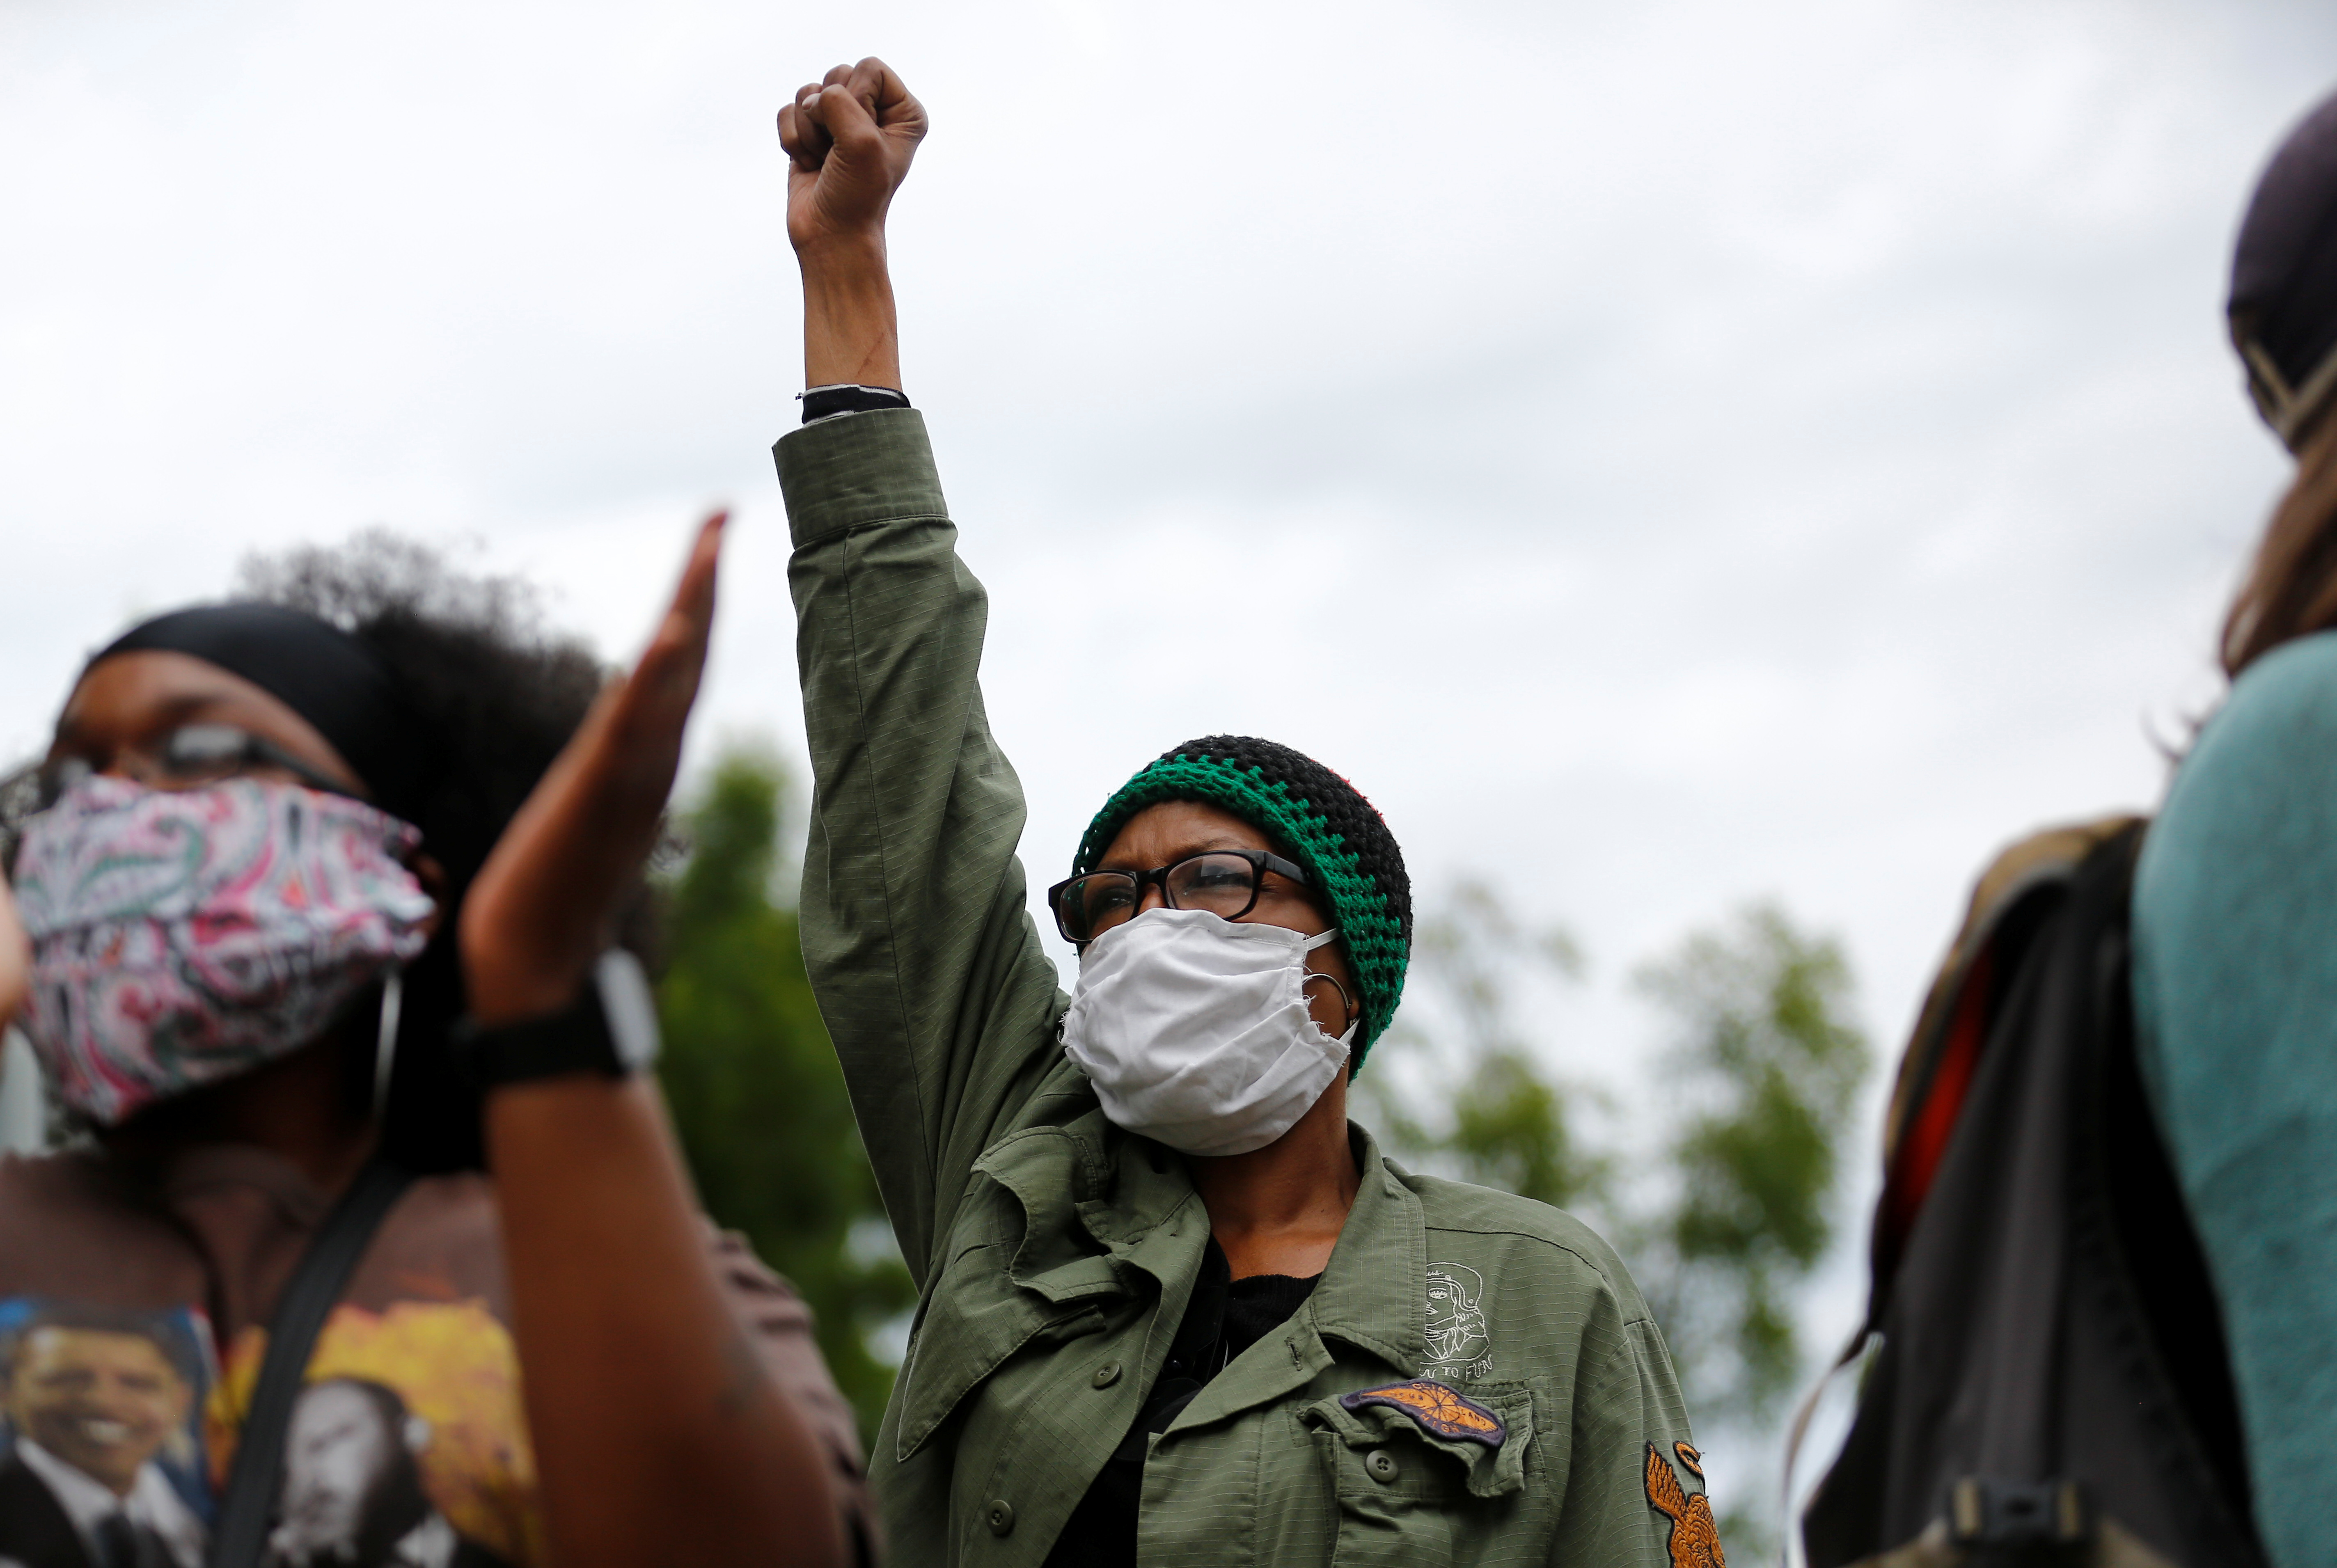 Tamu Simmons, 64, holds her fist in the air as protesters rally following the death of Manuel Ellis in Tacoma police custody in March, and the death of George Floyd in Minneapolis police custody, in Tacoma, Washington, U.S. June 5, 2020. REUTERS/Lindsey Wasson